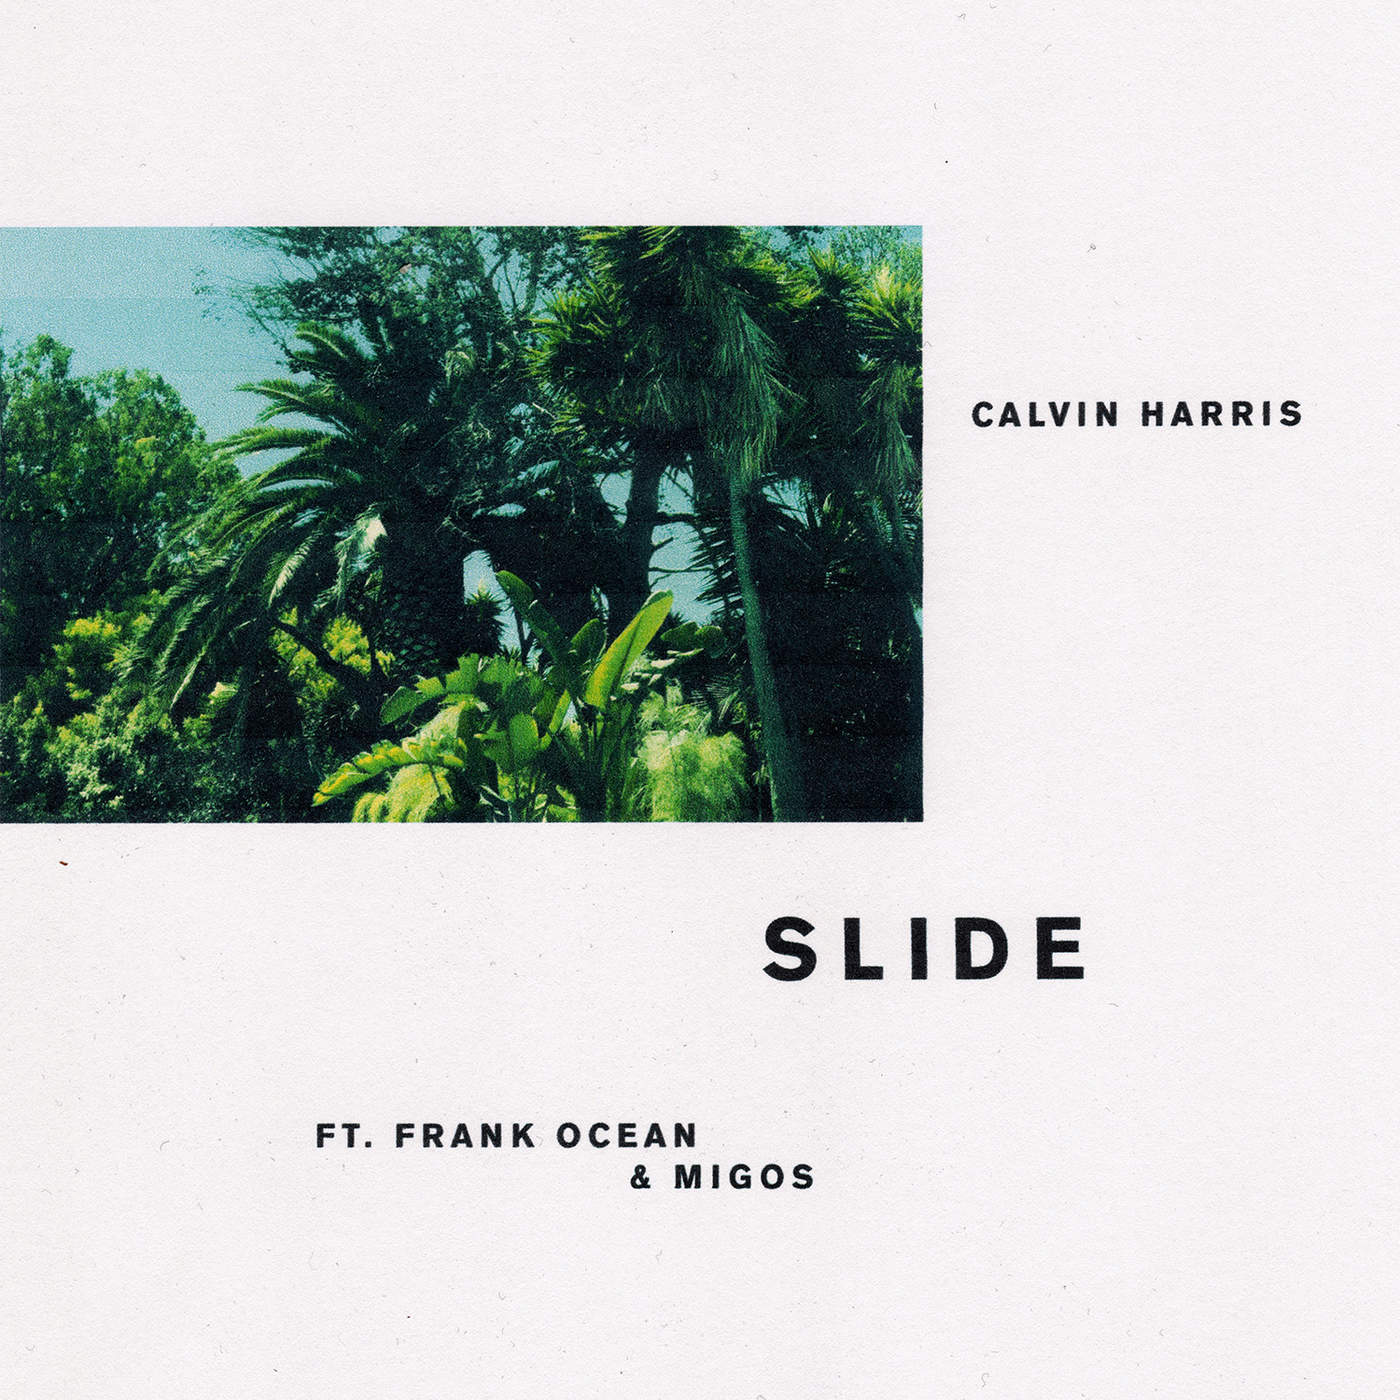 calvin haris slide